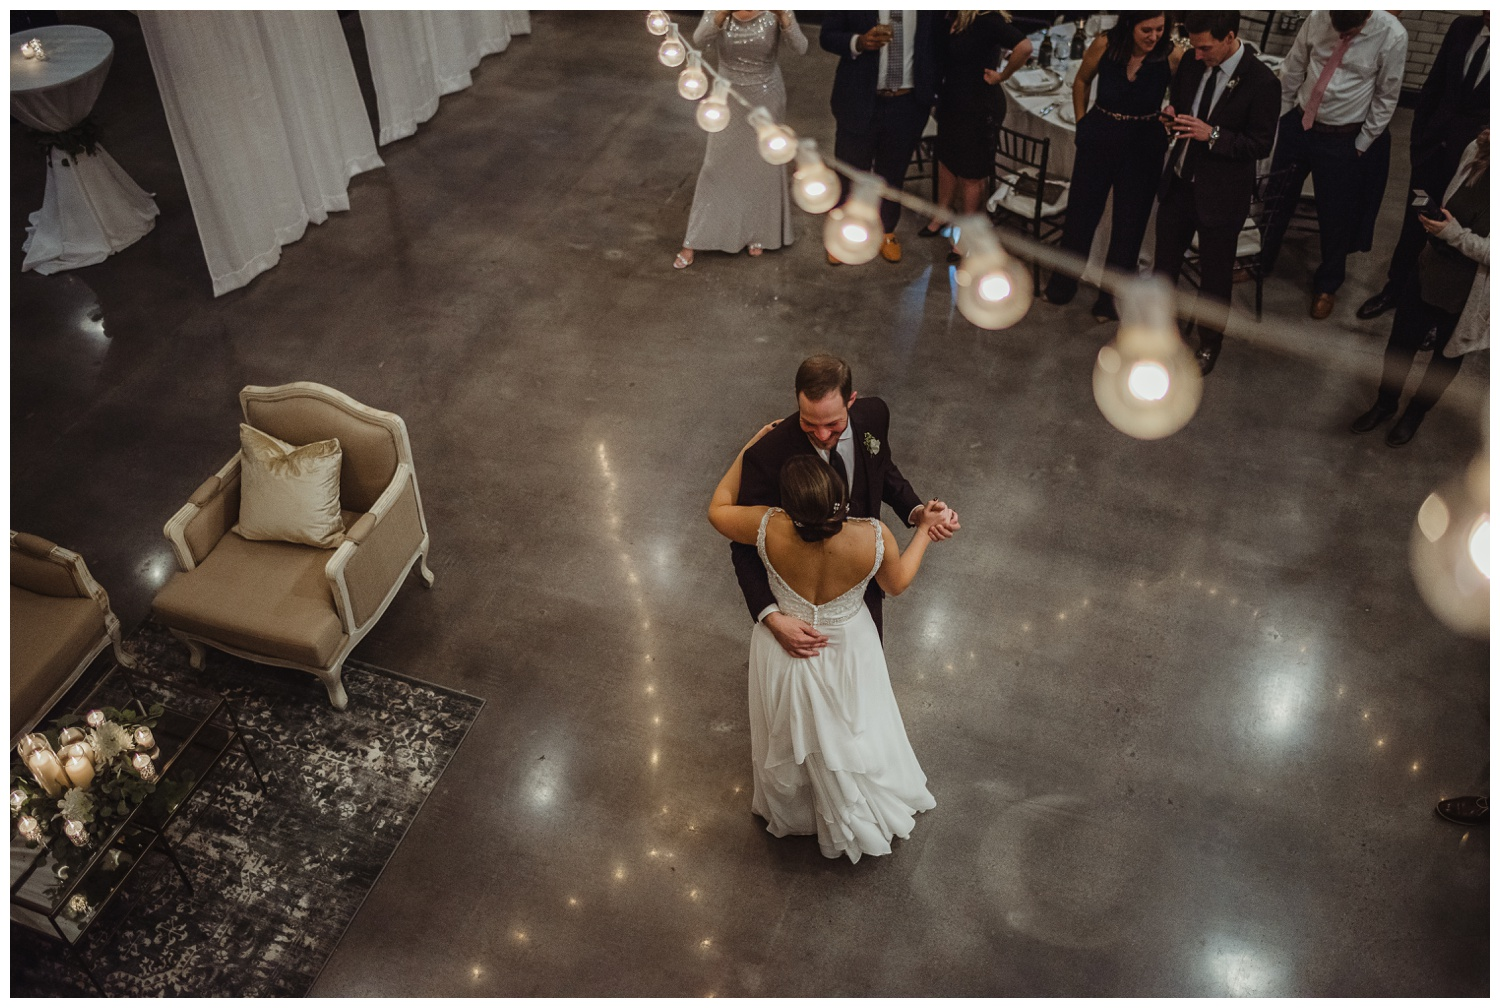 The bride and groom dance their first dance under the market lights in downtown Raleigh, photos by Rose Trail Images.